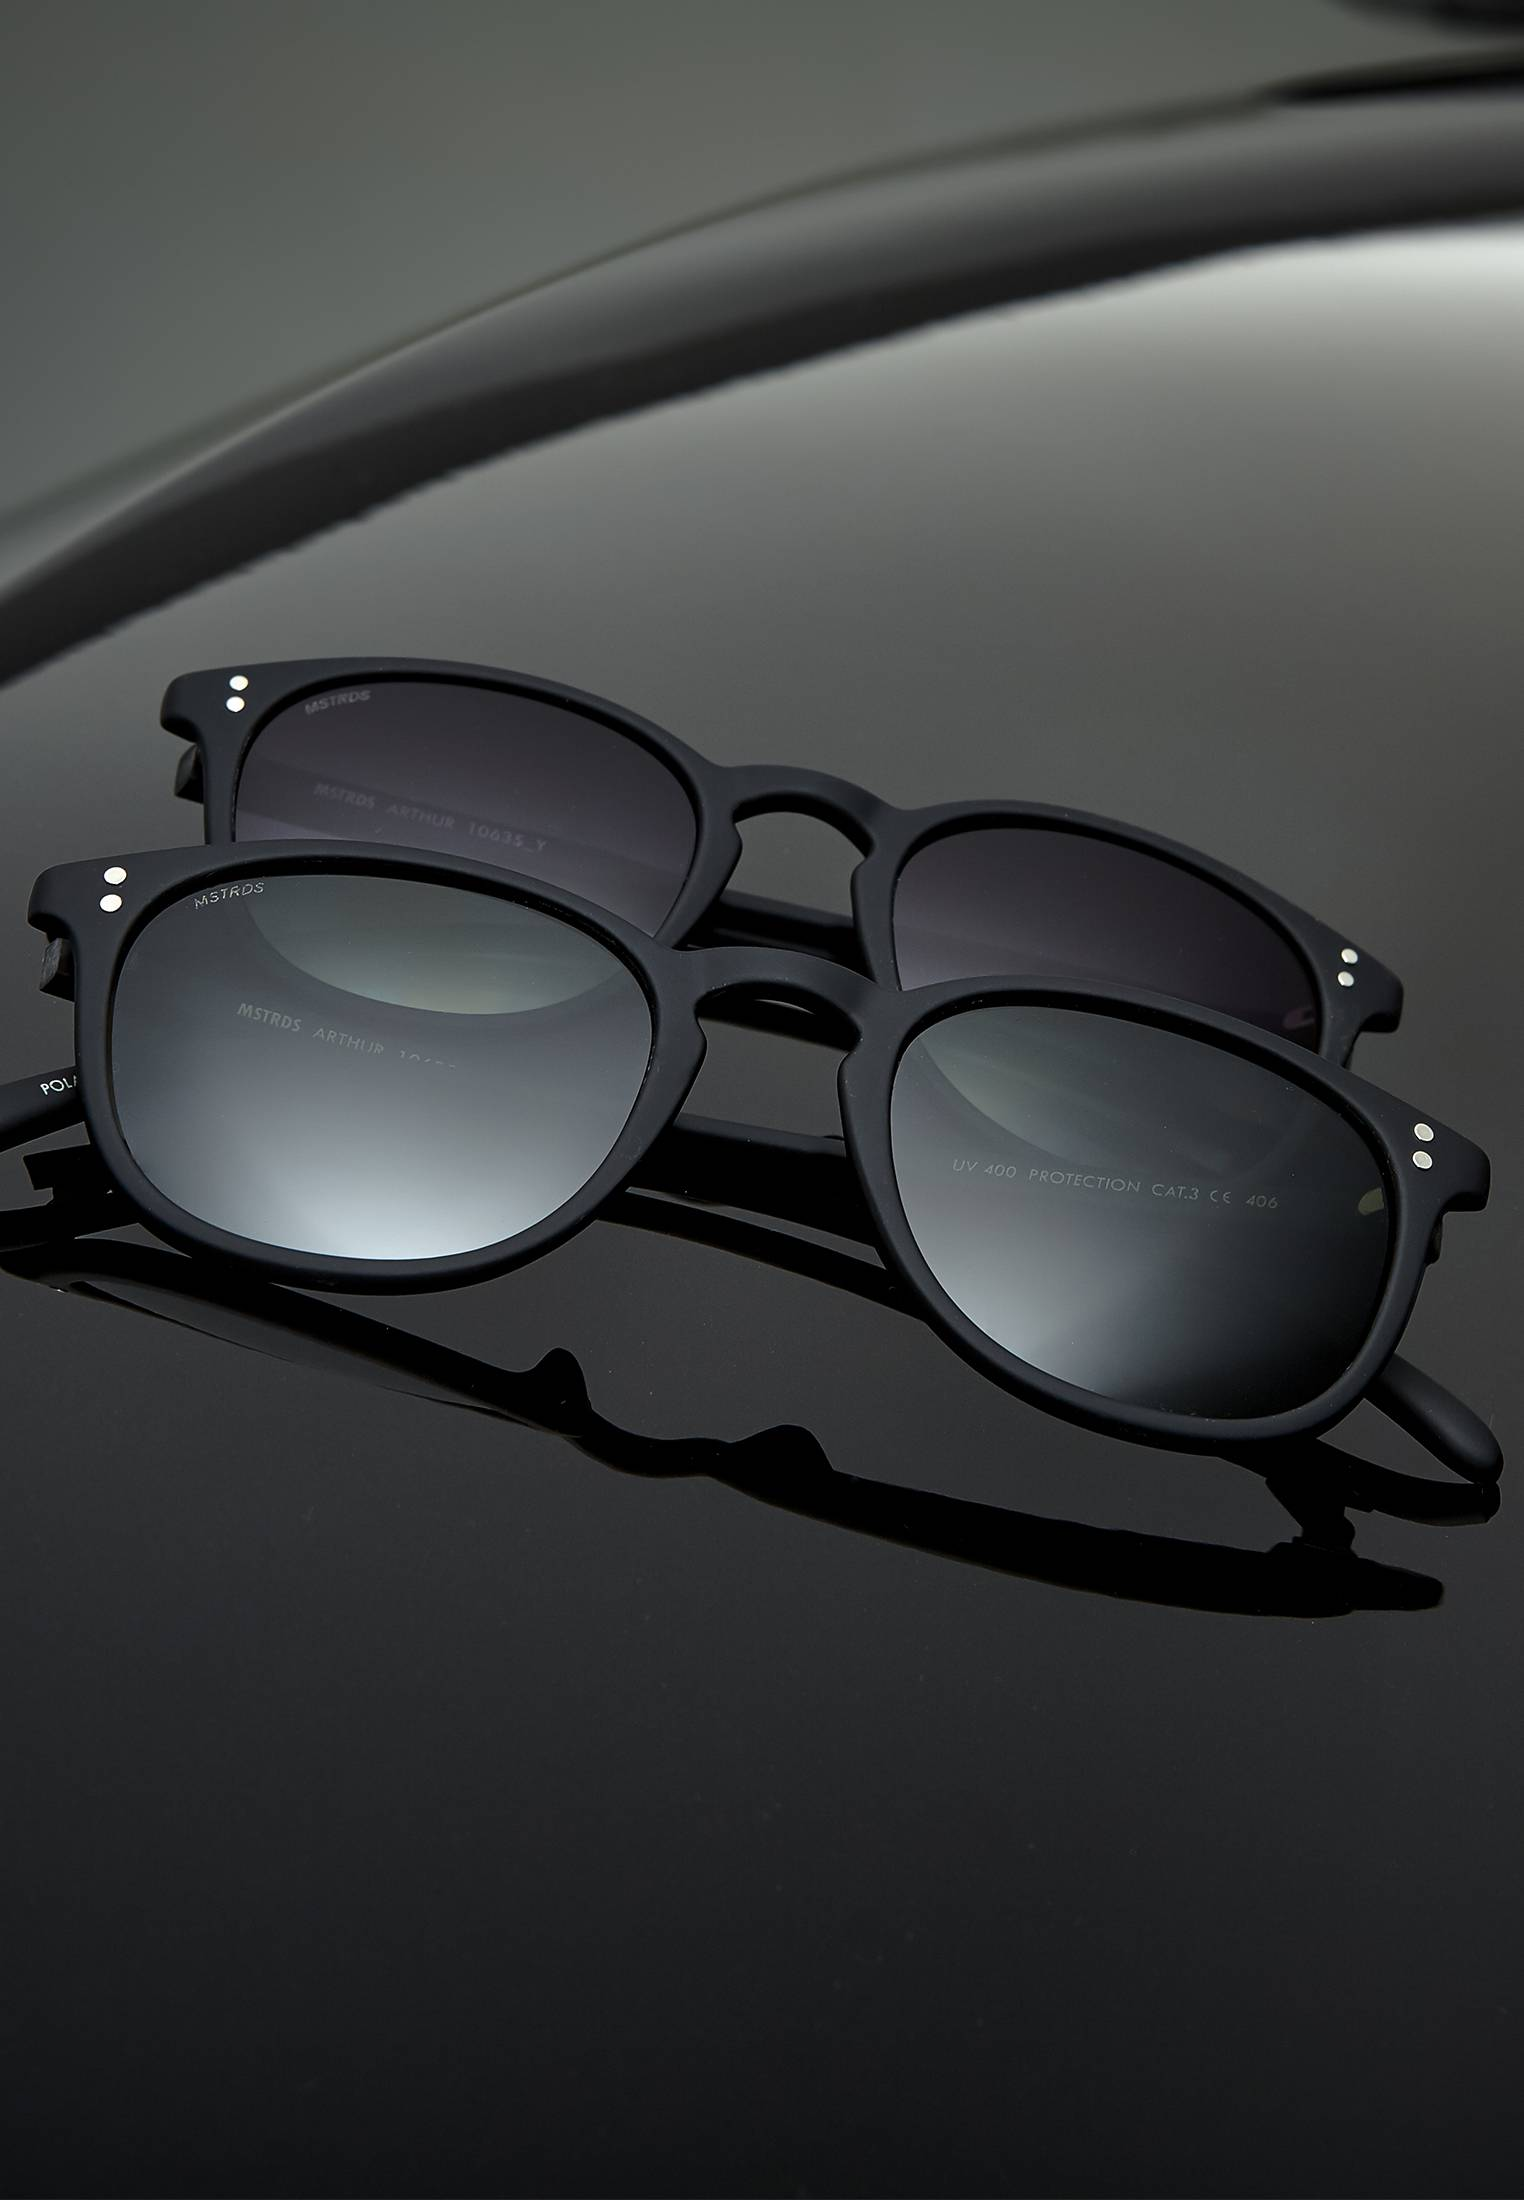 Master Dis Sunglasses Arthur Youth blk/gry - One Size